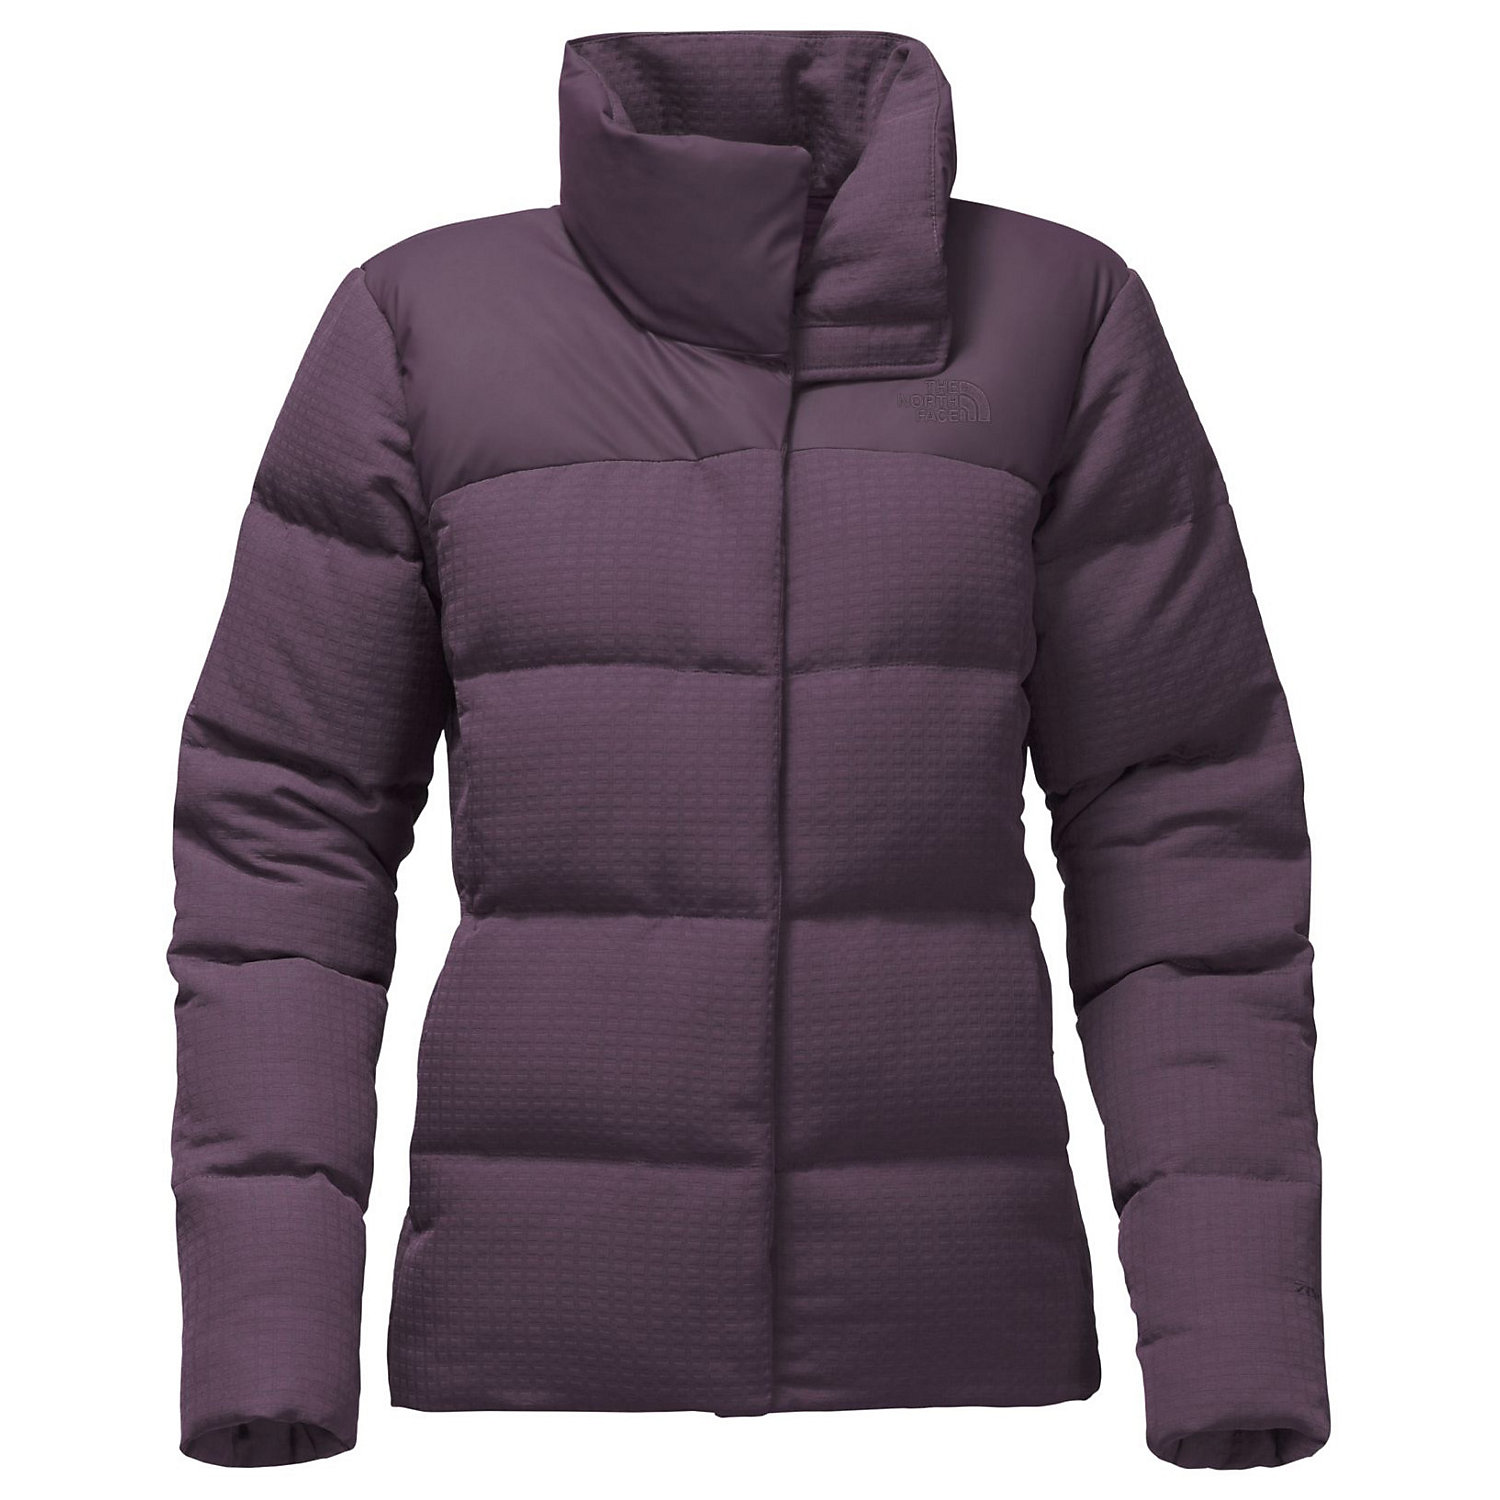 The North Face Women s Novelty Nuptse Jacket - Moosejaw 602902553